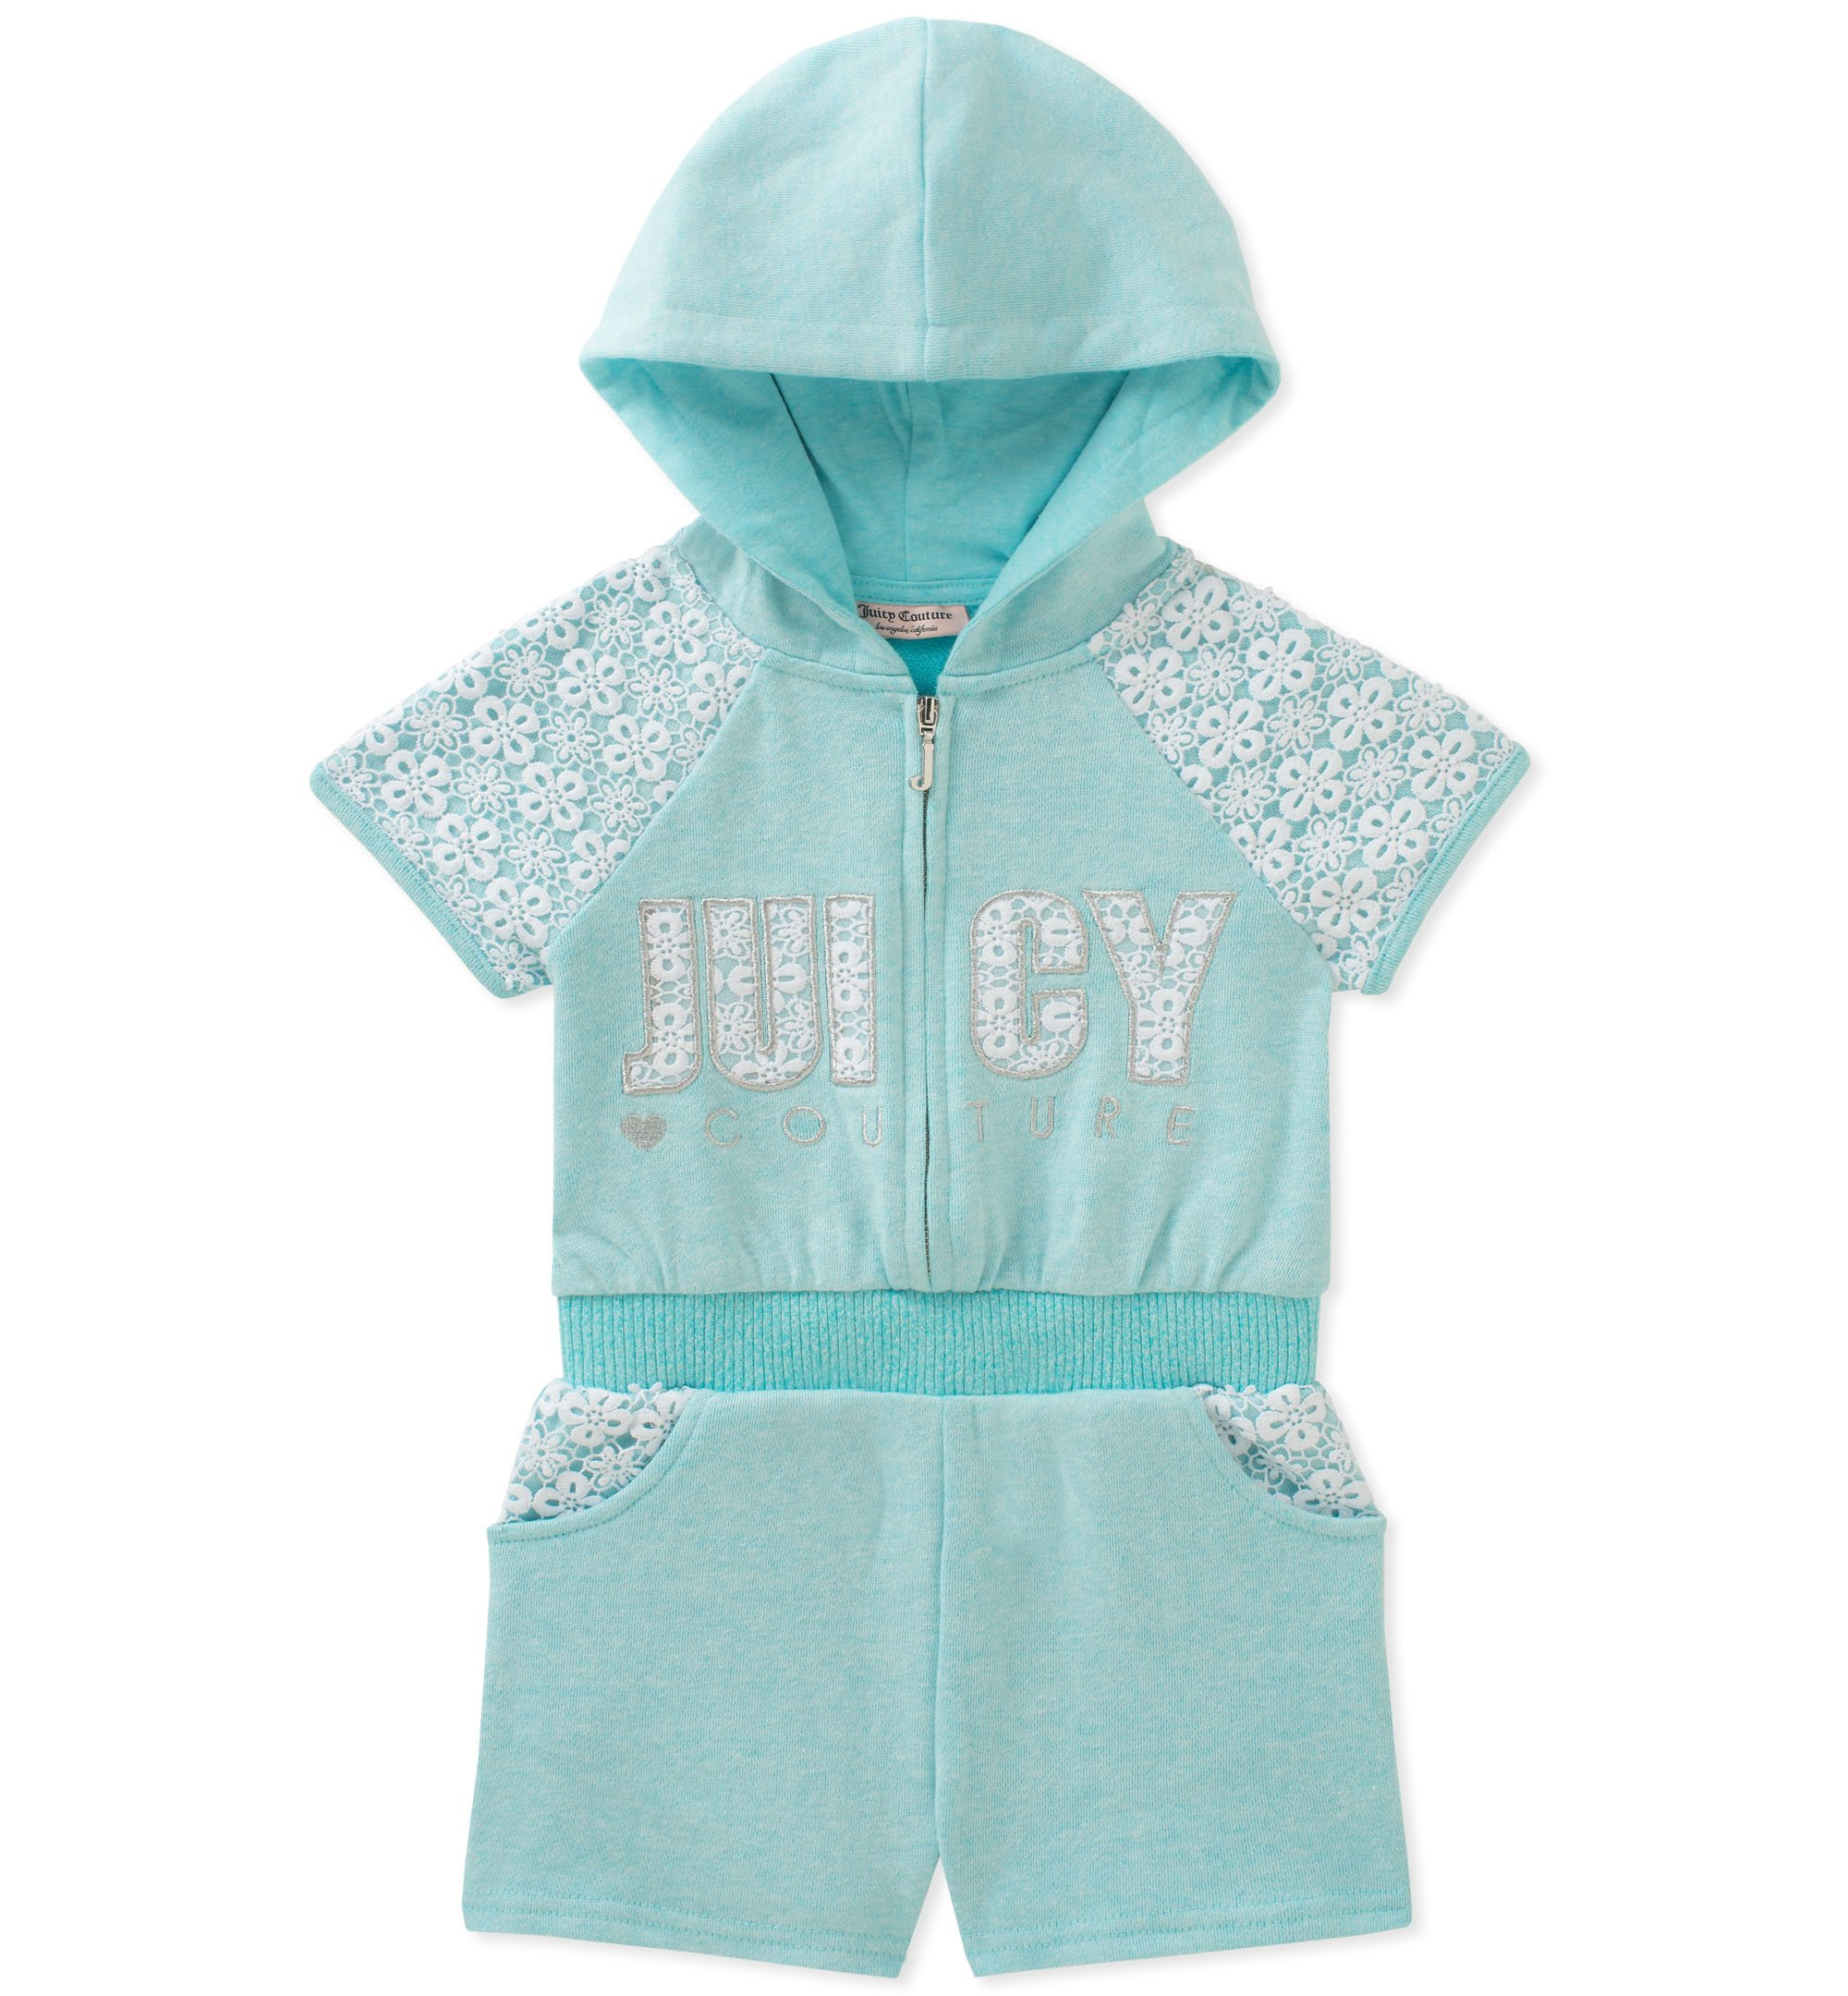 Juicy Couture Baby Girls Hooded Romper